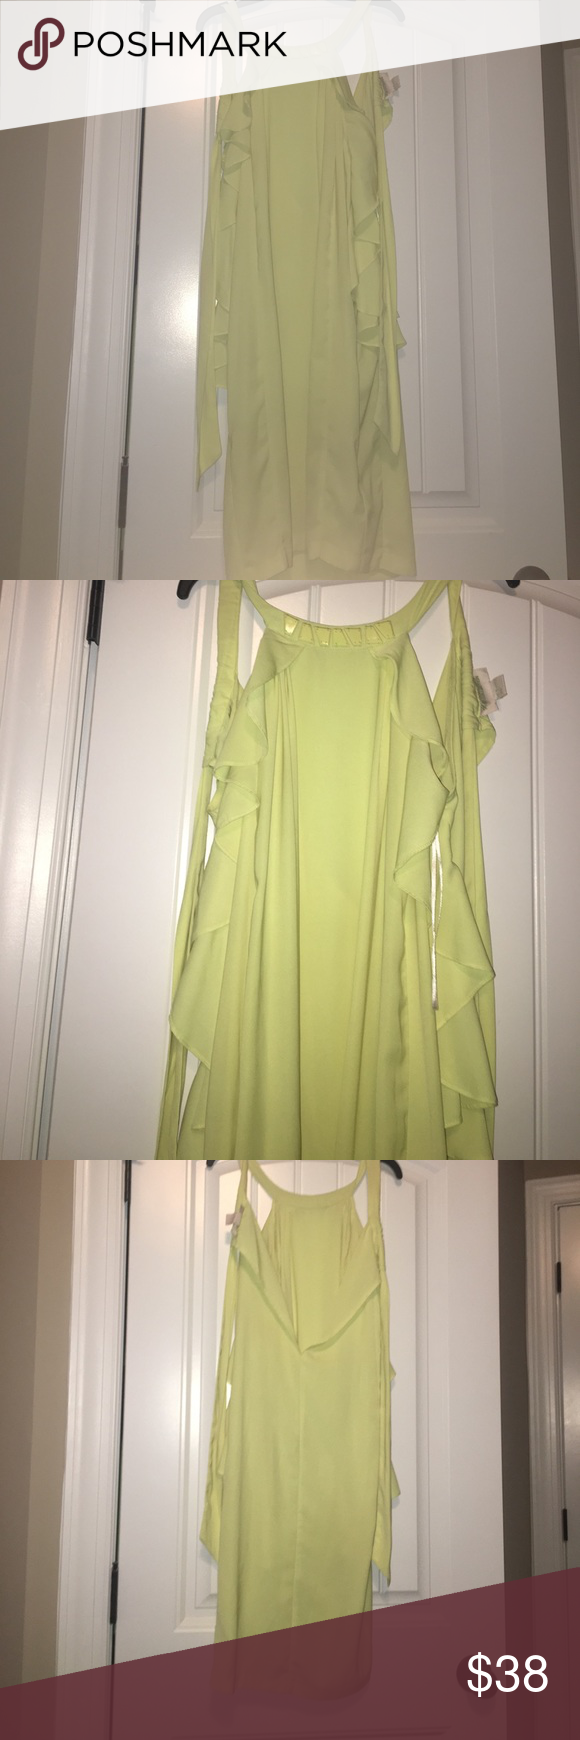 H&M Conscious Collection Vanessa Paradis   D, H m dress and Yellow ...